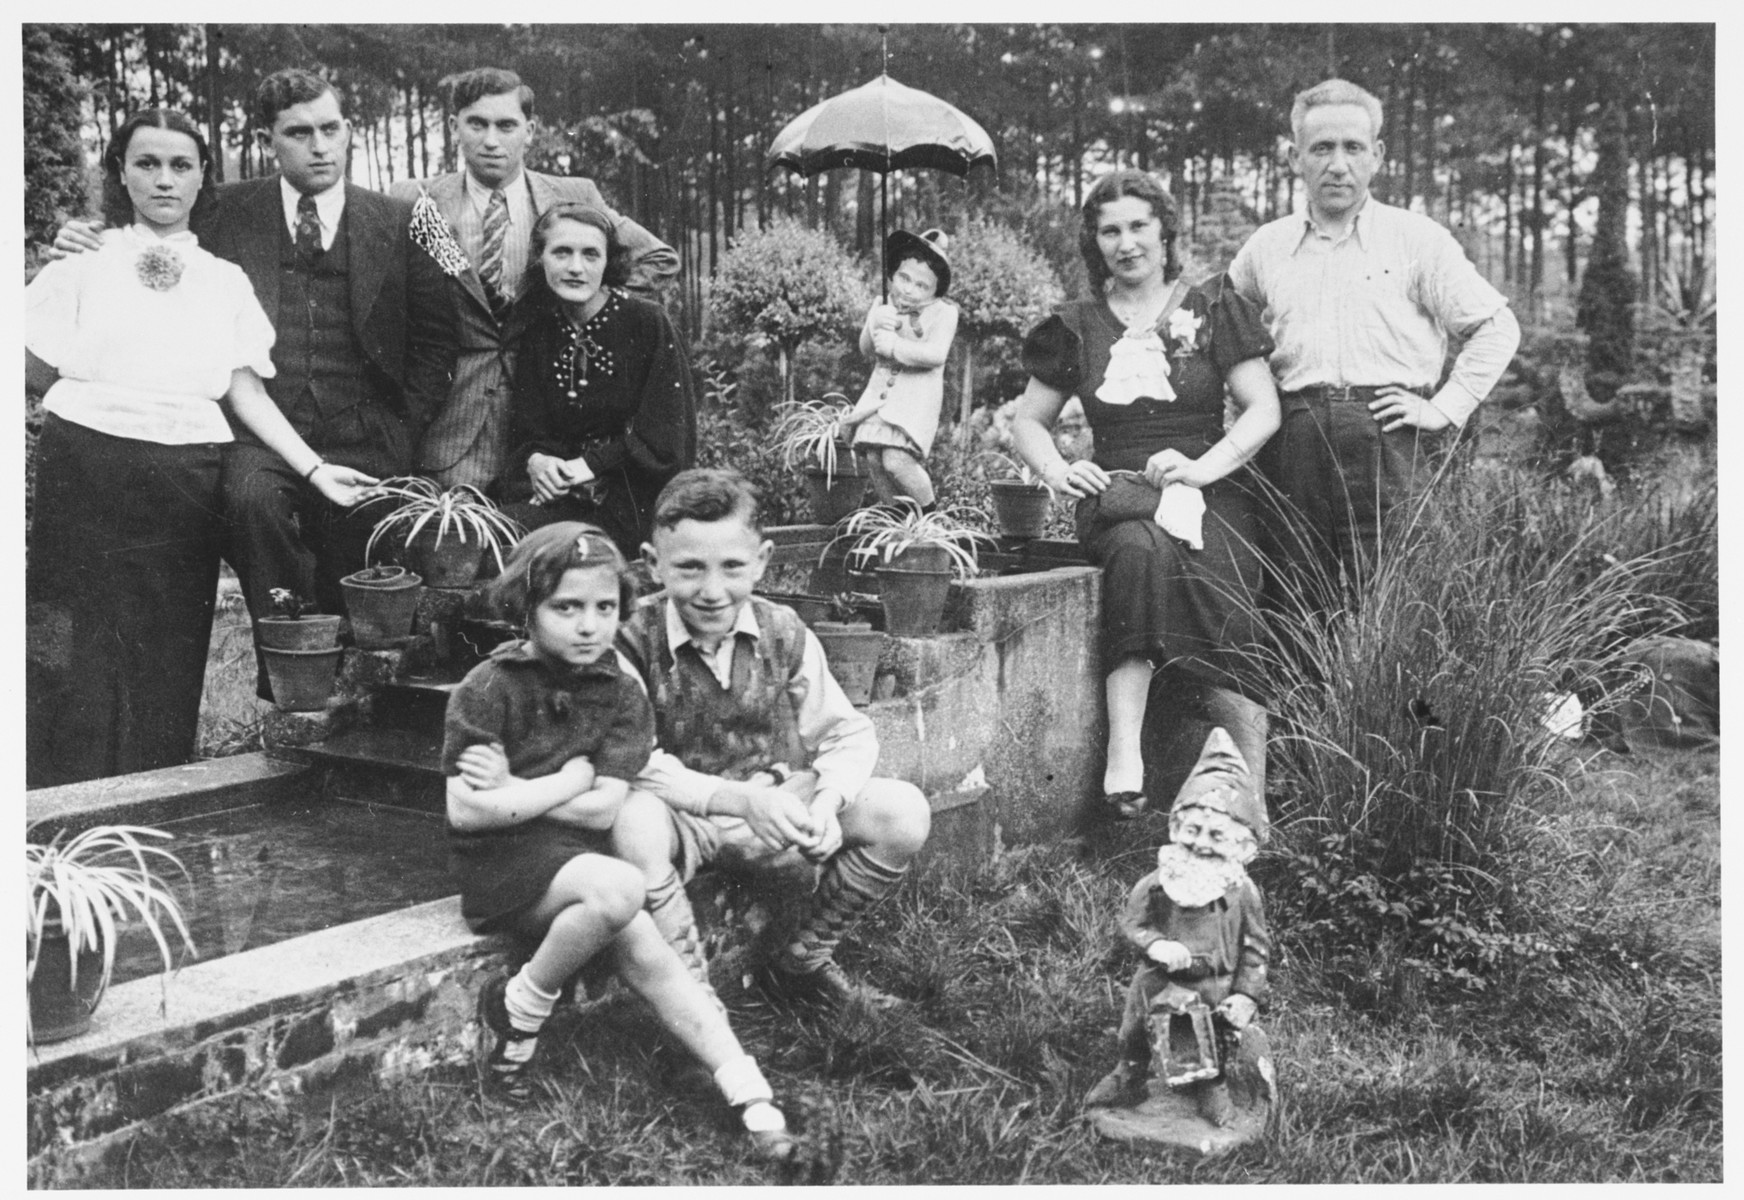 Members of several Jewish families pose in a public garden in Antwerp, Belgium.  Pictured standing from left to right are Estera and Adolf Ciechanow; Alex and Leah Ciechanow; Chancu and Mendel Lublin. In front are Flora Mendelowicz and Jackie Ciechanow.